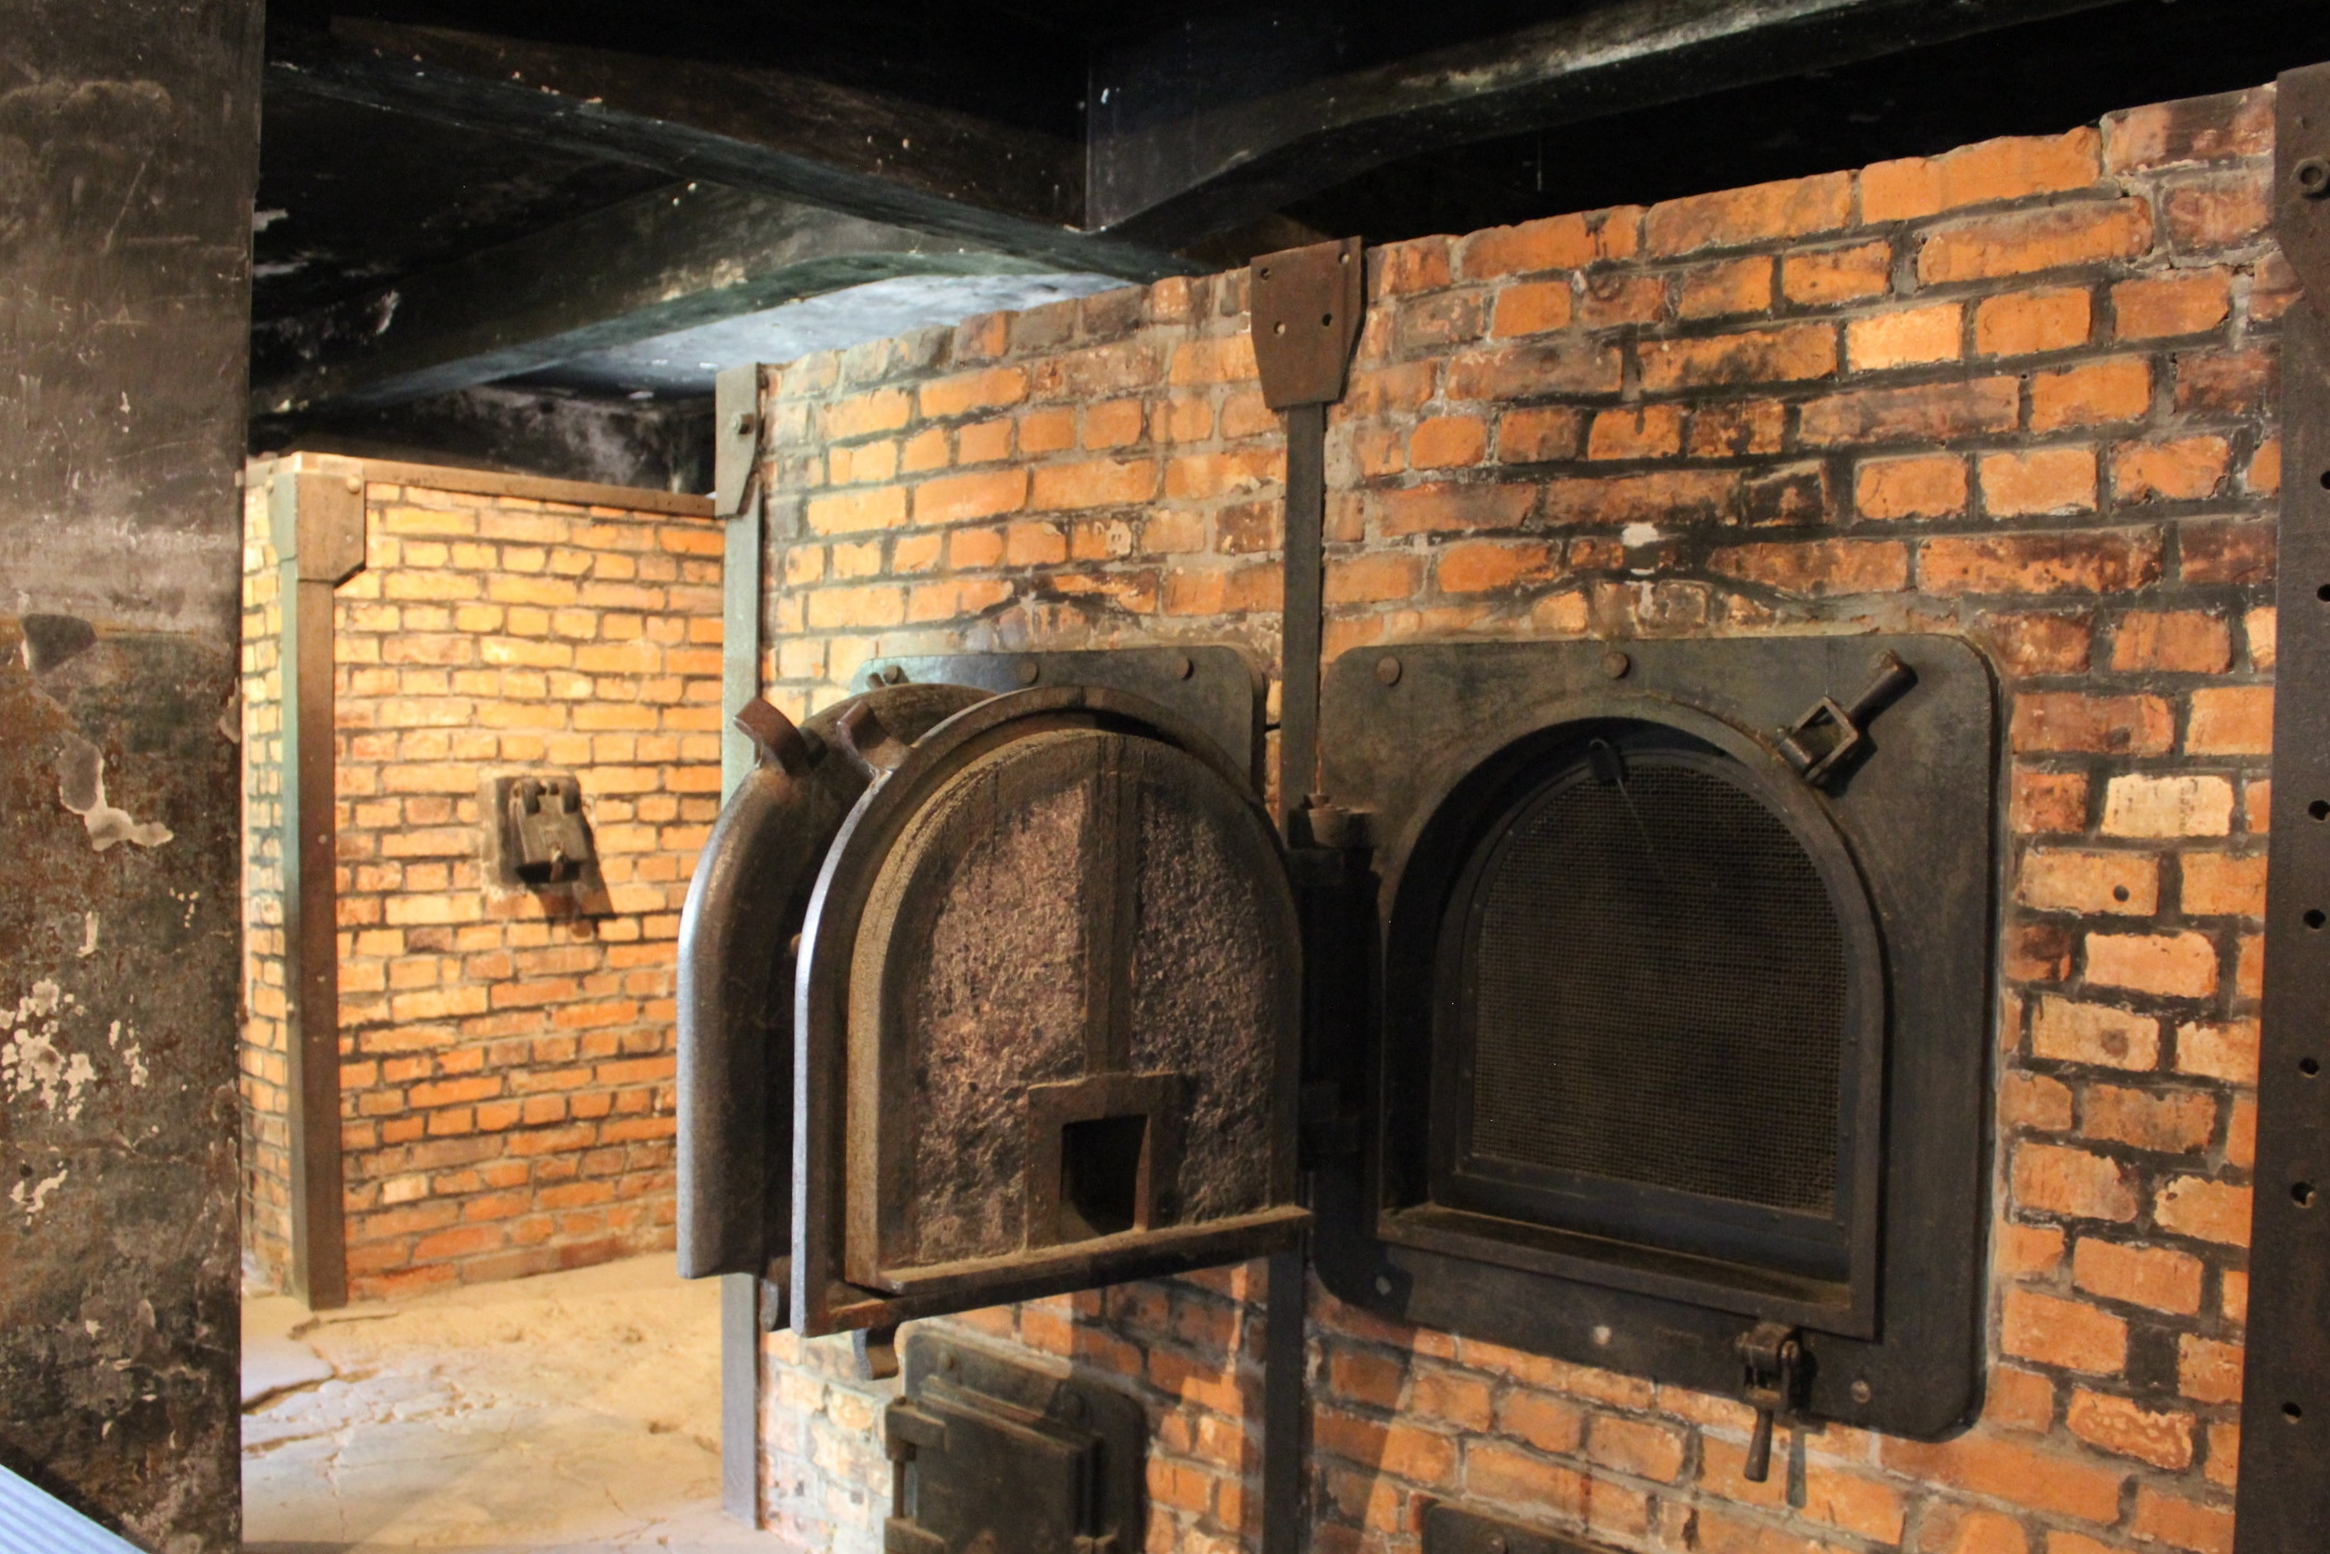 """The furnace located on-site at Krema I: certain camp prisoners, known as Sonderkommando (""""special unit"""") were responsible for cremating the bodies of gas chamber victims on an industrial scale. The Sonderkommando were themselves killed every few months and replaced with new prisoners, due to their intimate knowledge of the Nazis' crimes."""